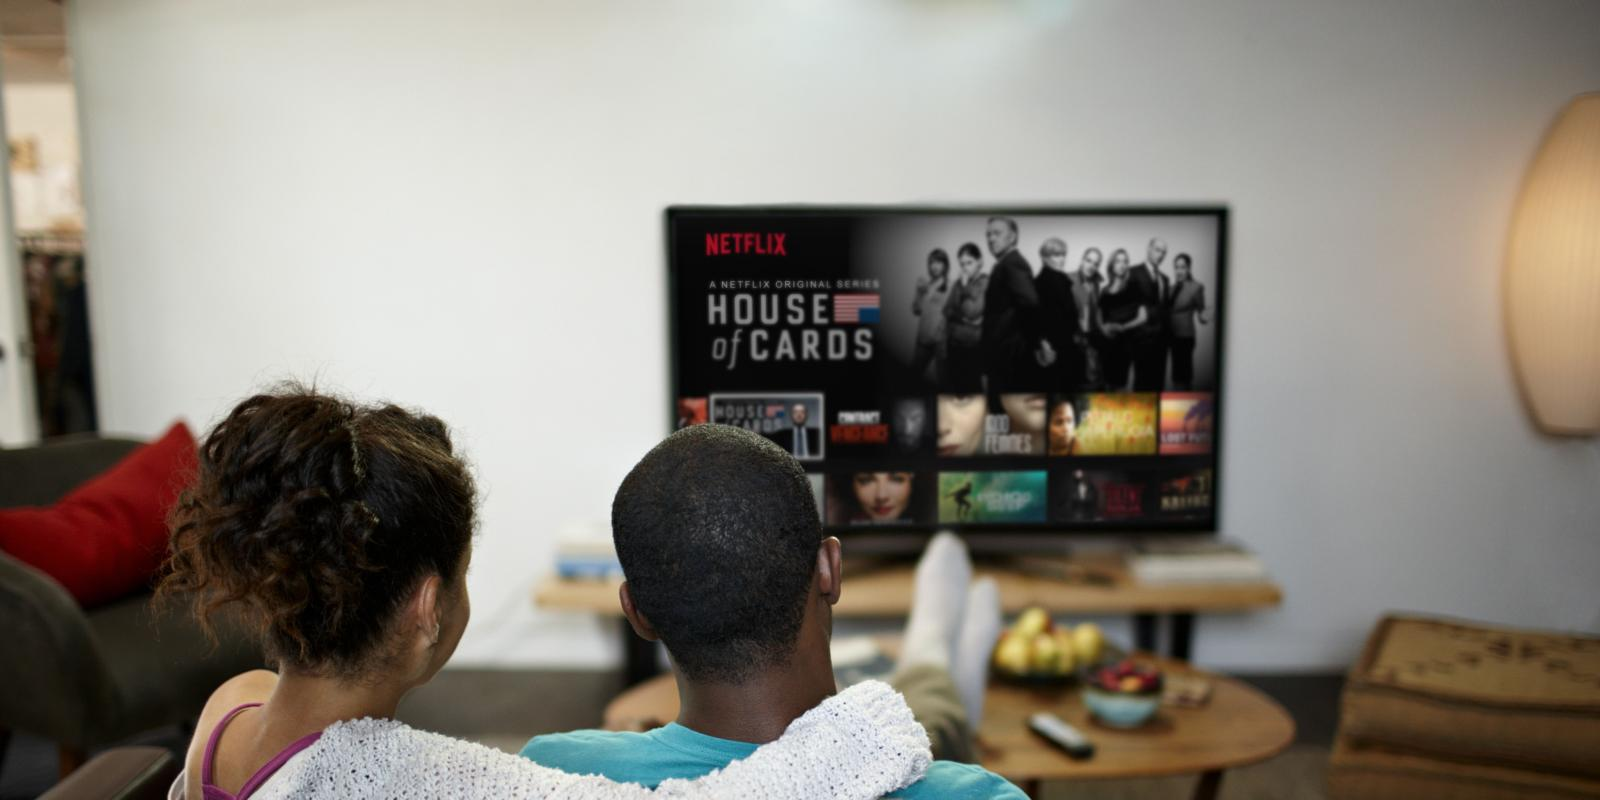 How To Set Up Netflix A Step By Step Guide